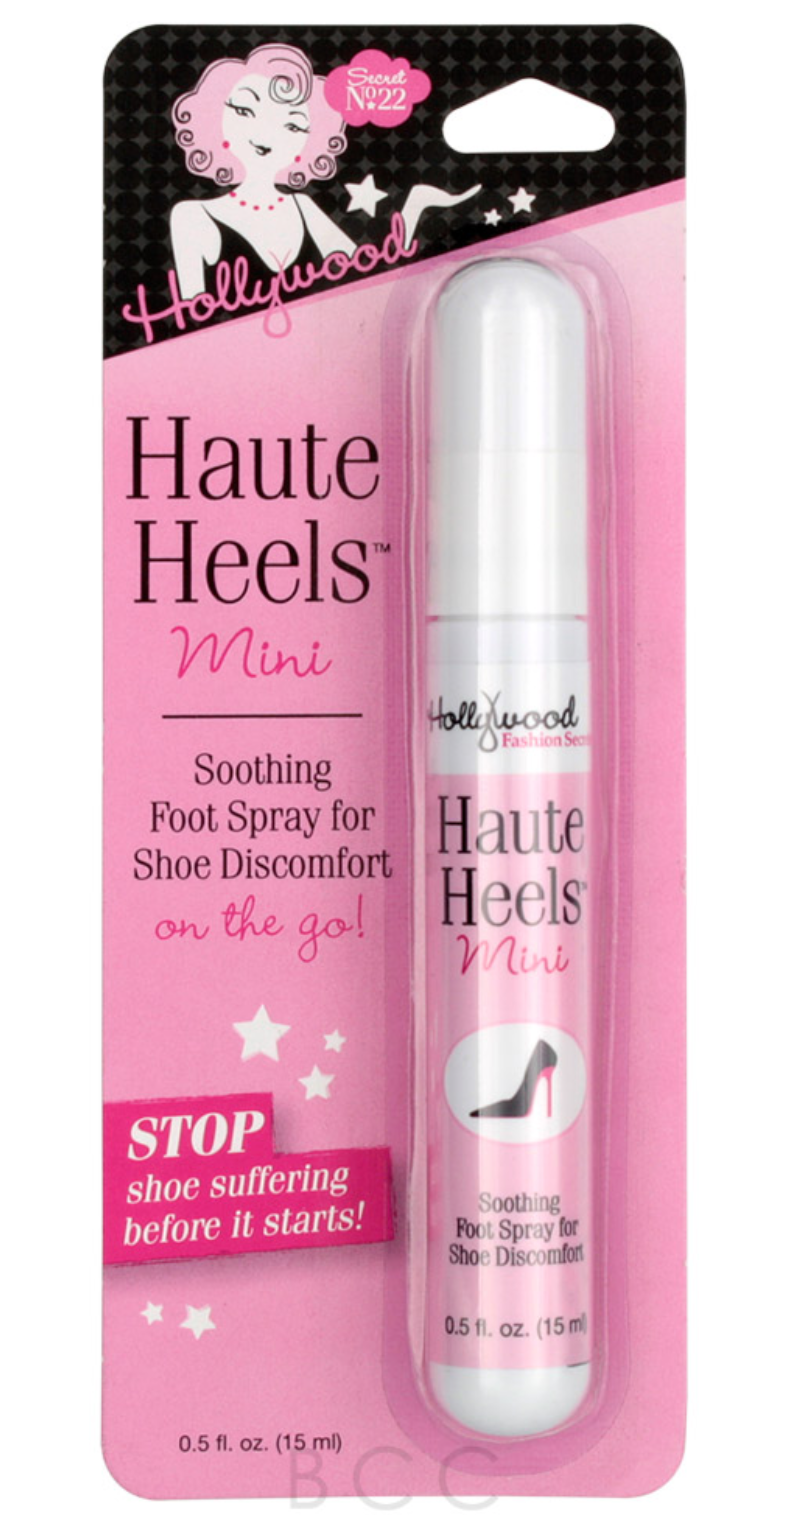 Shop Haute Heels Mini Soothing Foot Spray 0.5 oz. at  New London Pharmacy. Relieve the pain from heels and flats. Free shipping on all orders of $50.00